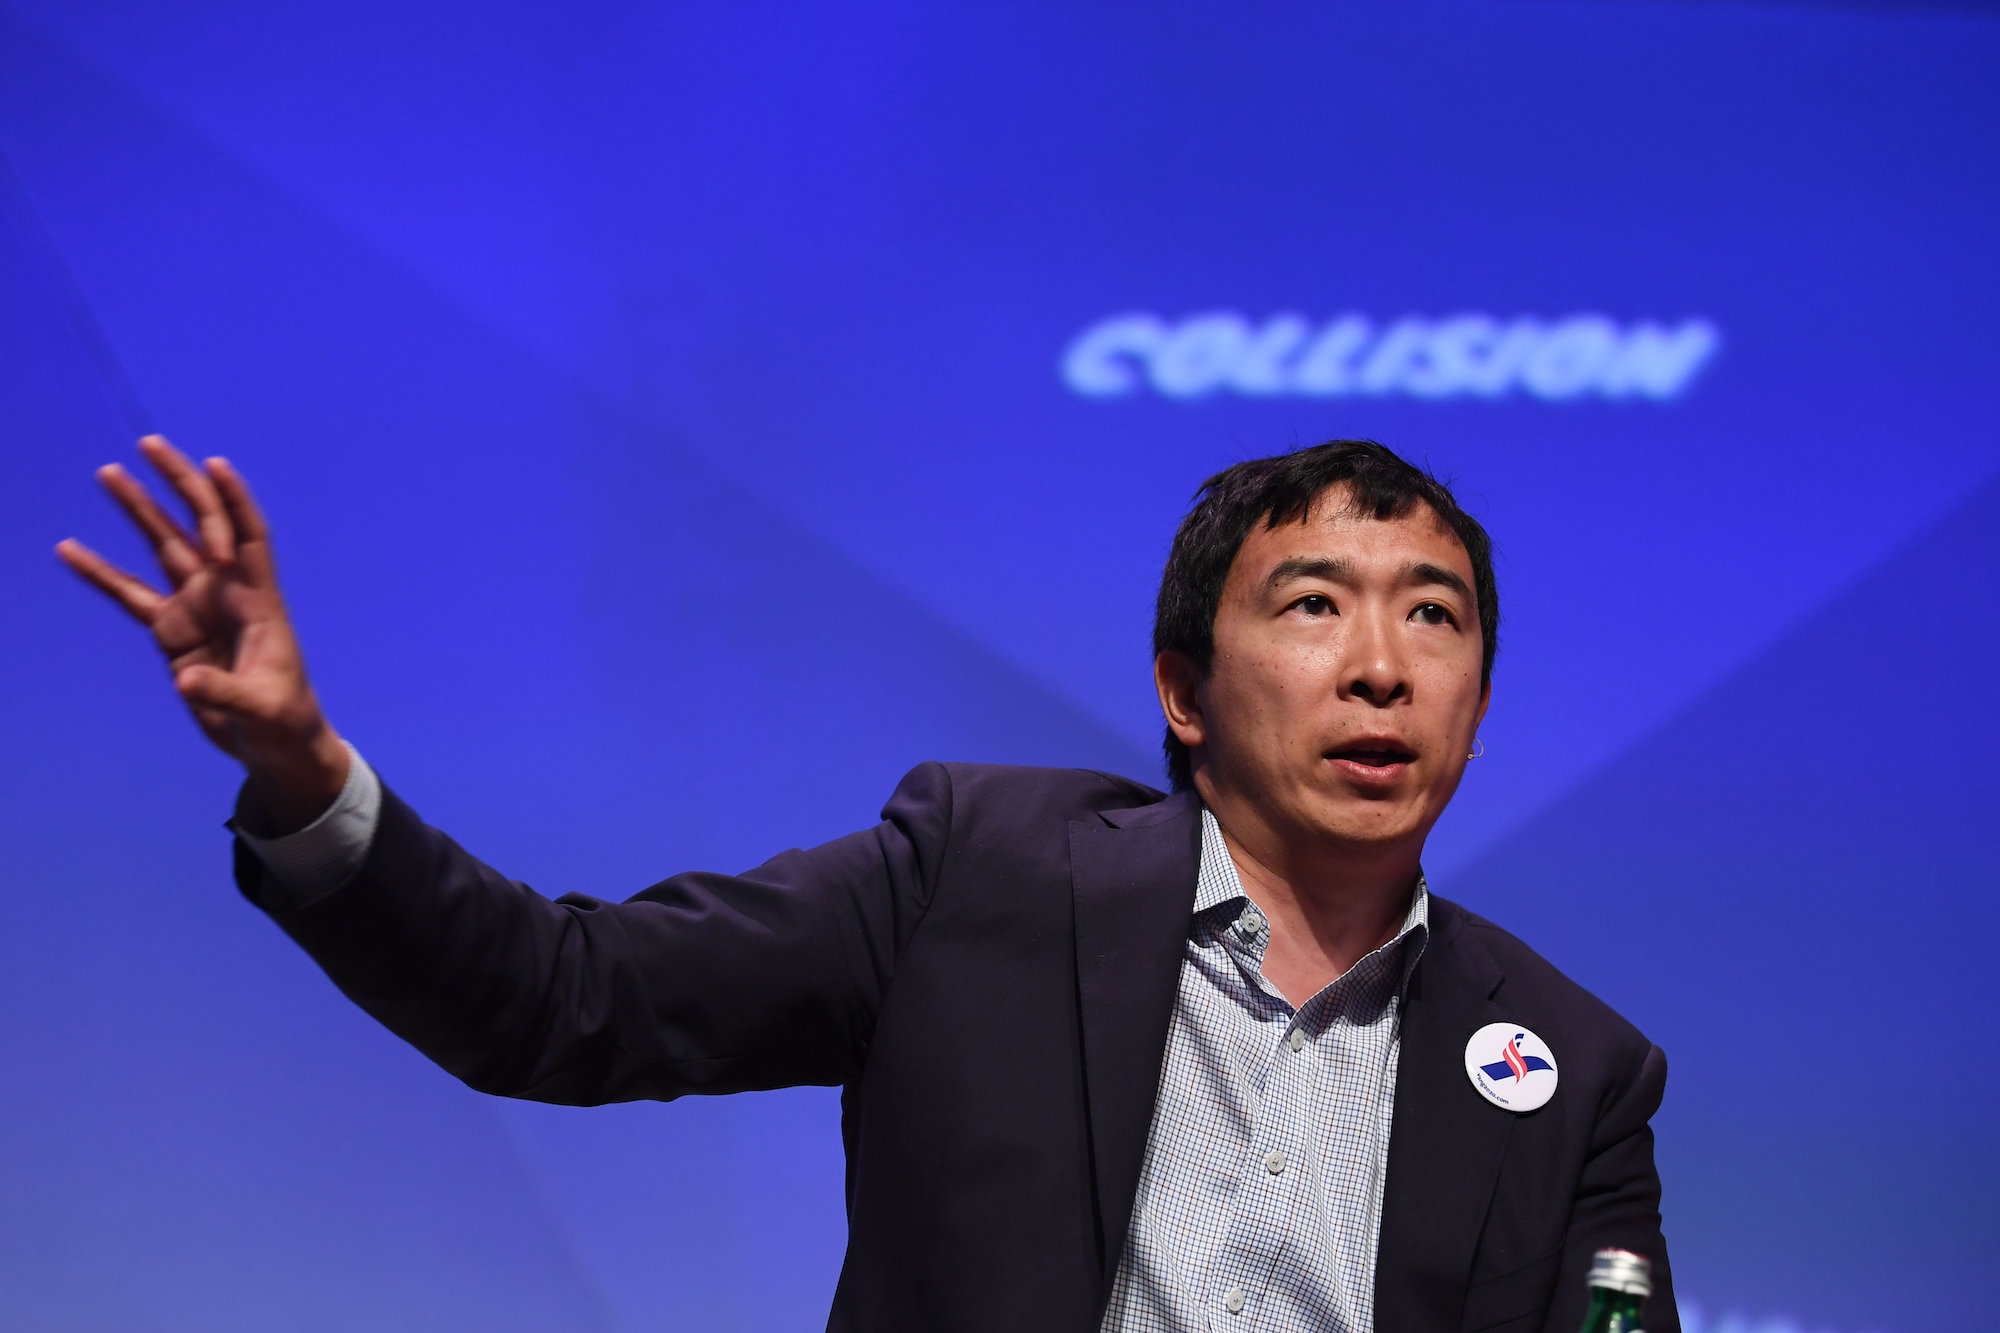 Andrew yang the most meme able 2020 candidate also wants to save journalism